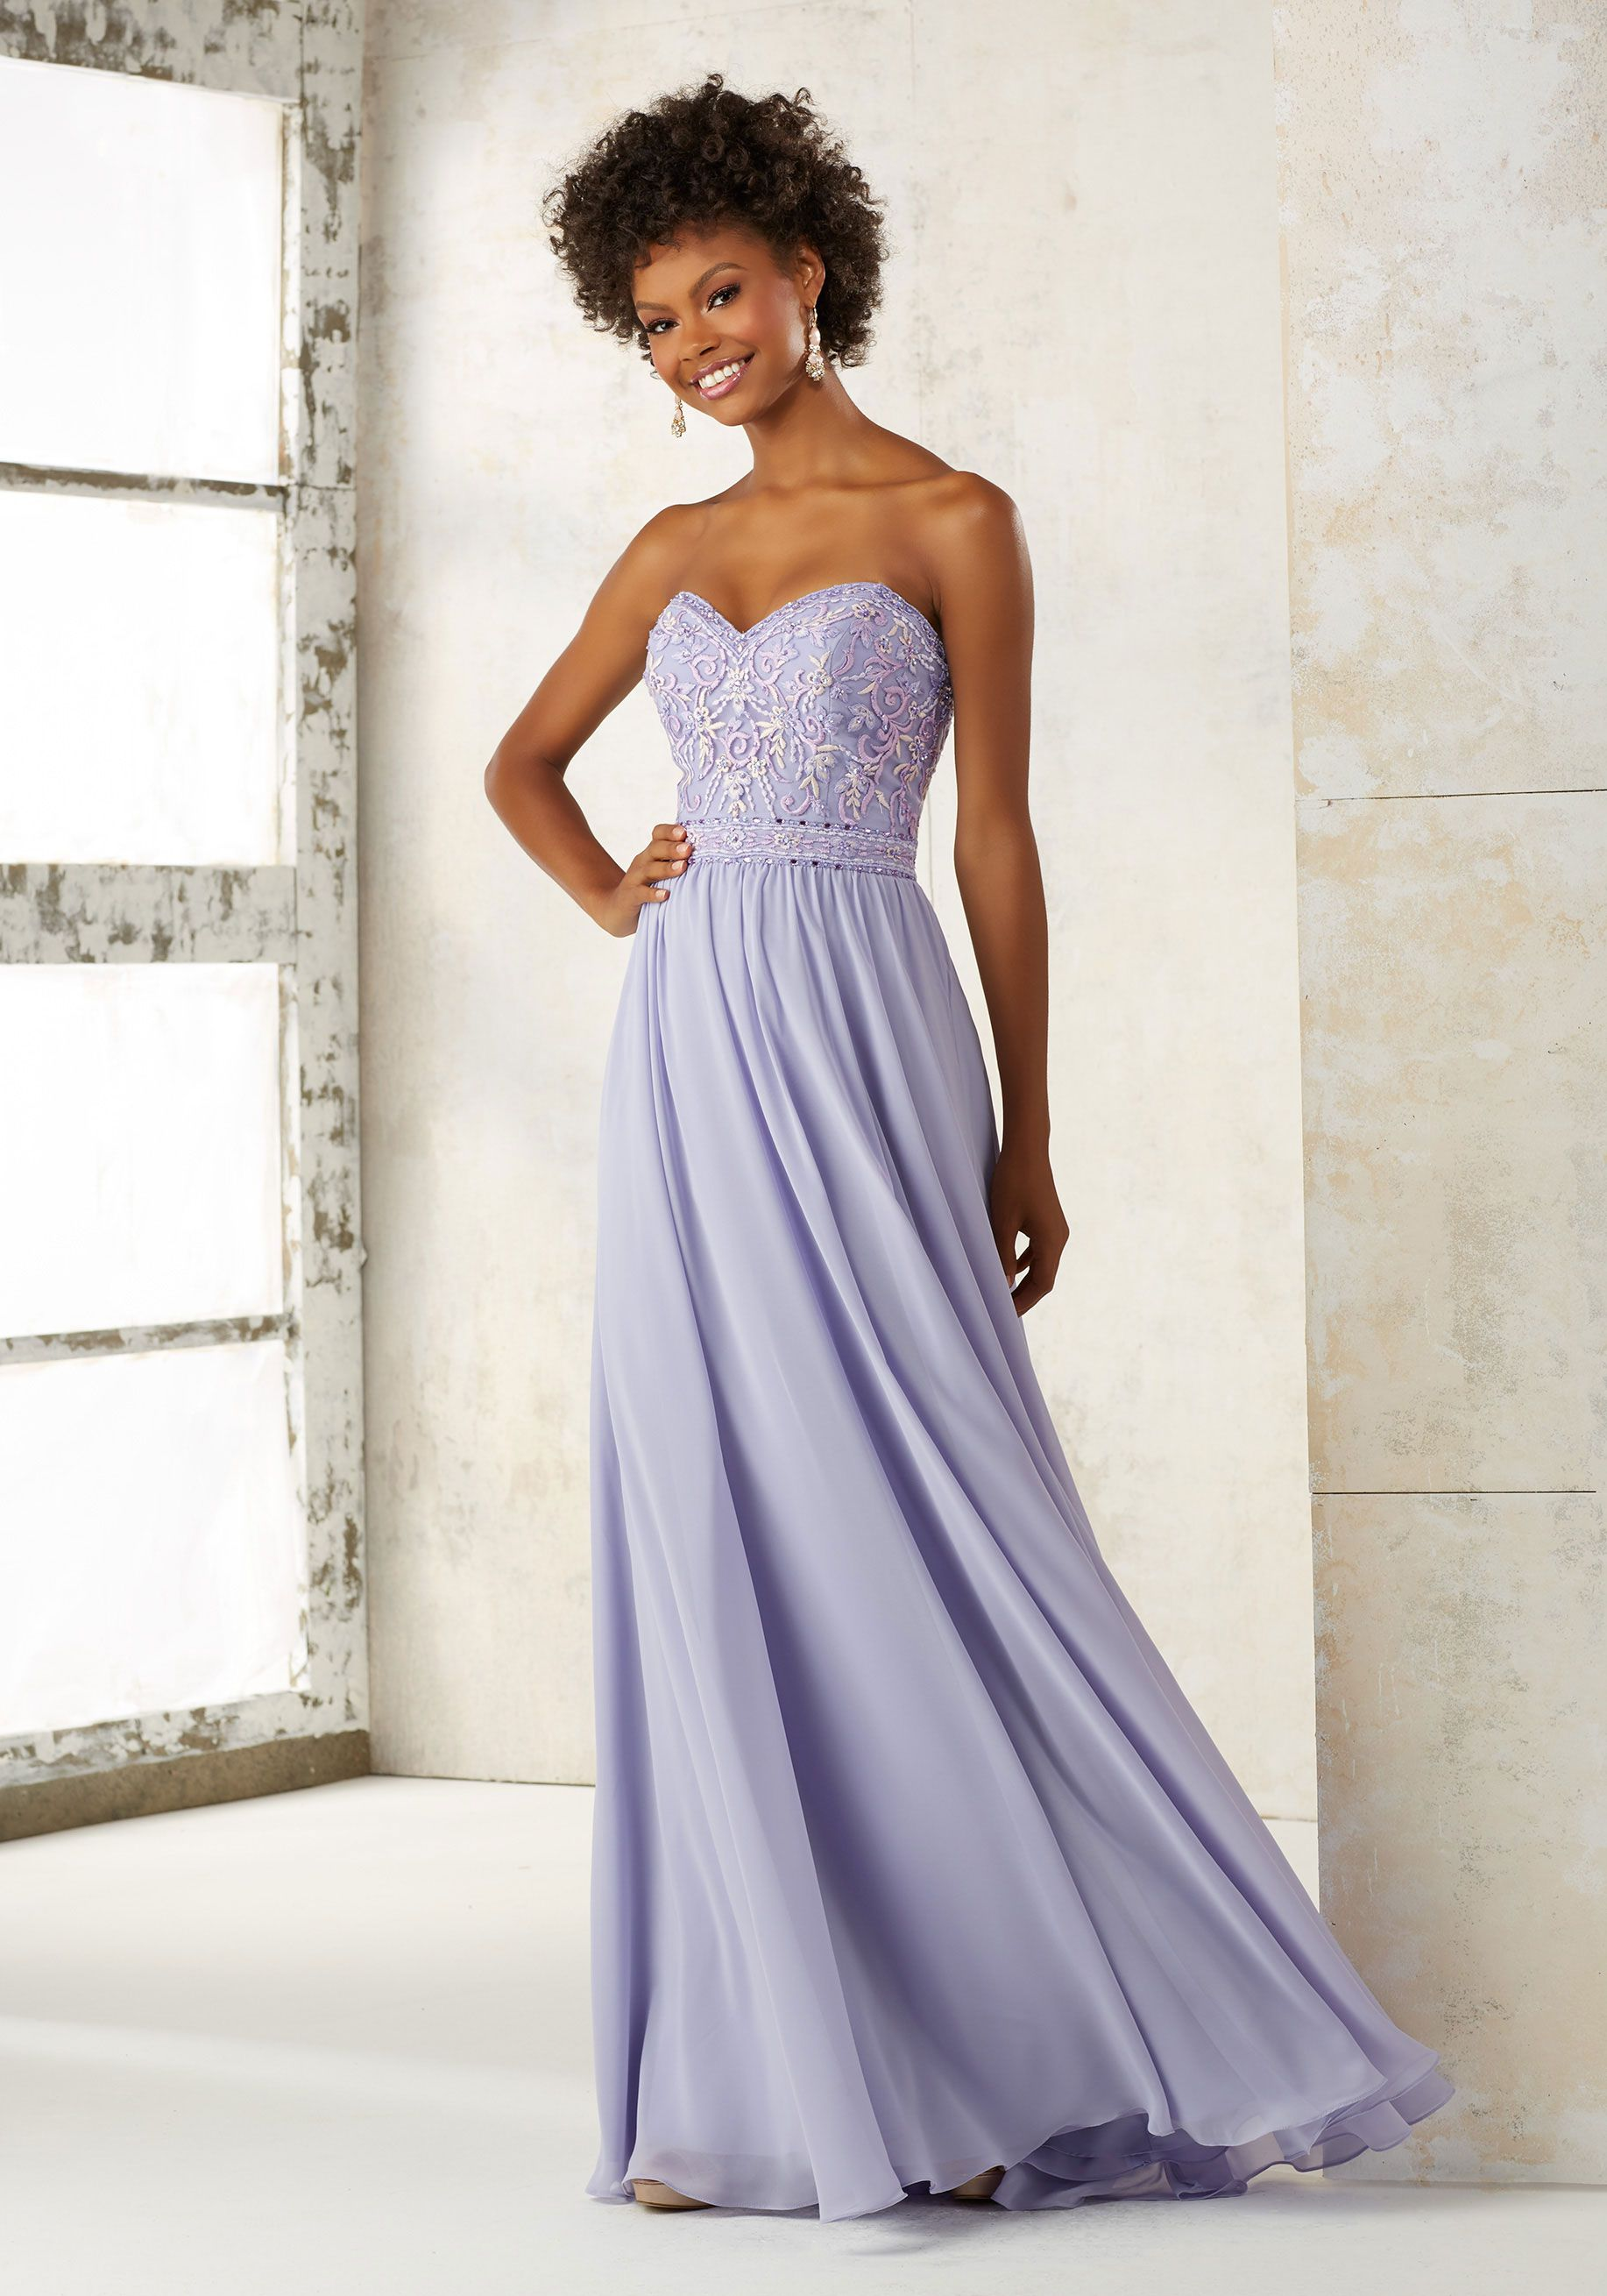 533b4bd1f99 Bridesmaid Dresses and Gowns by Morilee Madeline Gardner. Beautiful Bridesmaids  Dress Featuring a Fitted Sweetheart Bodice with Embroidery and Beading.